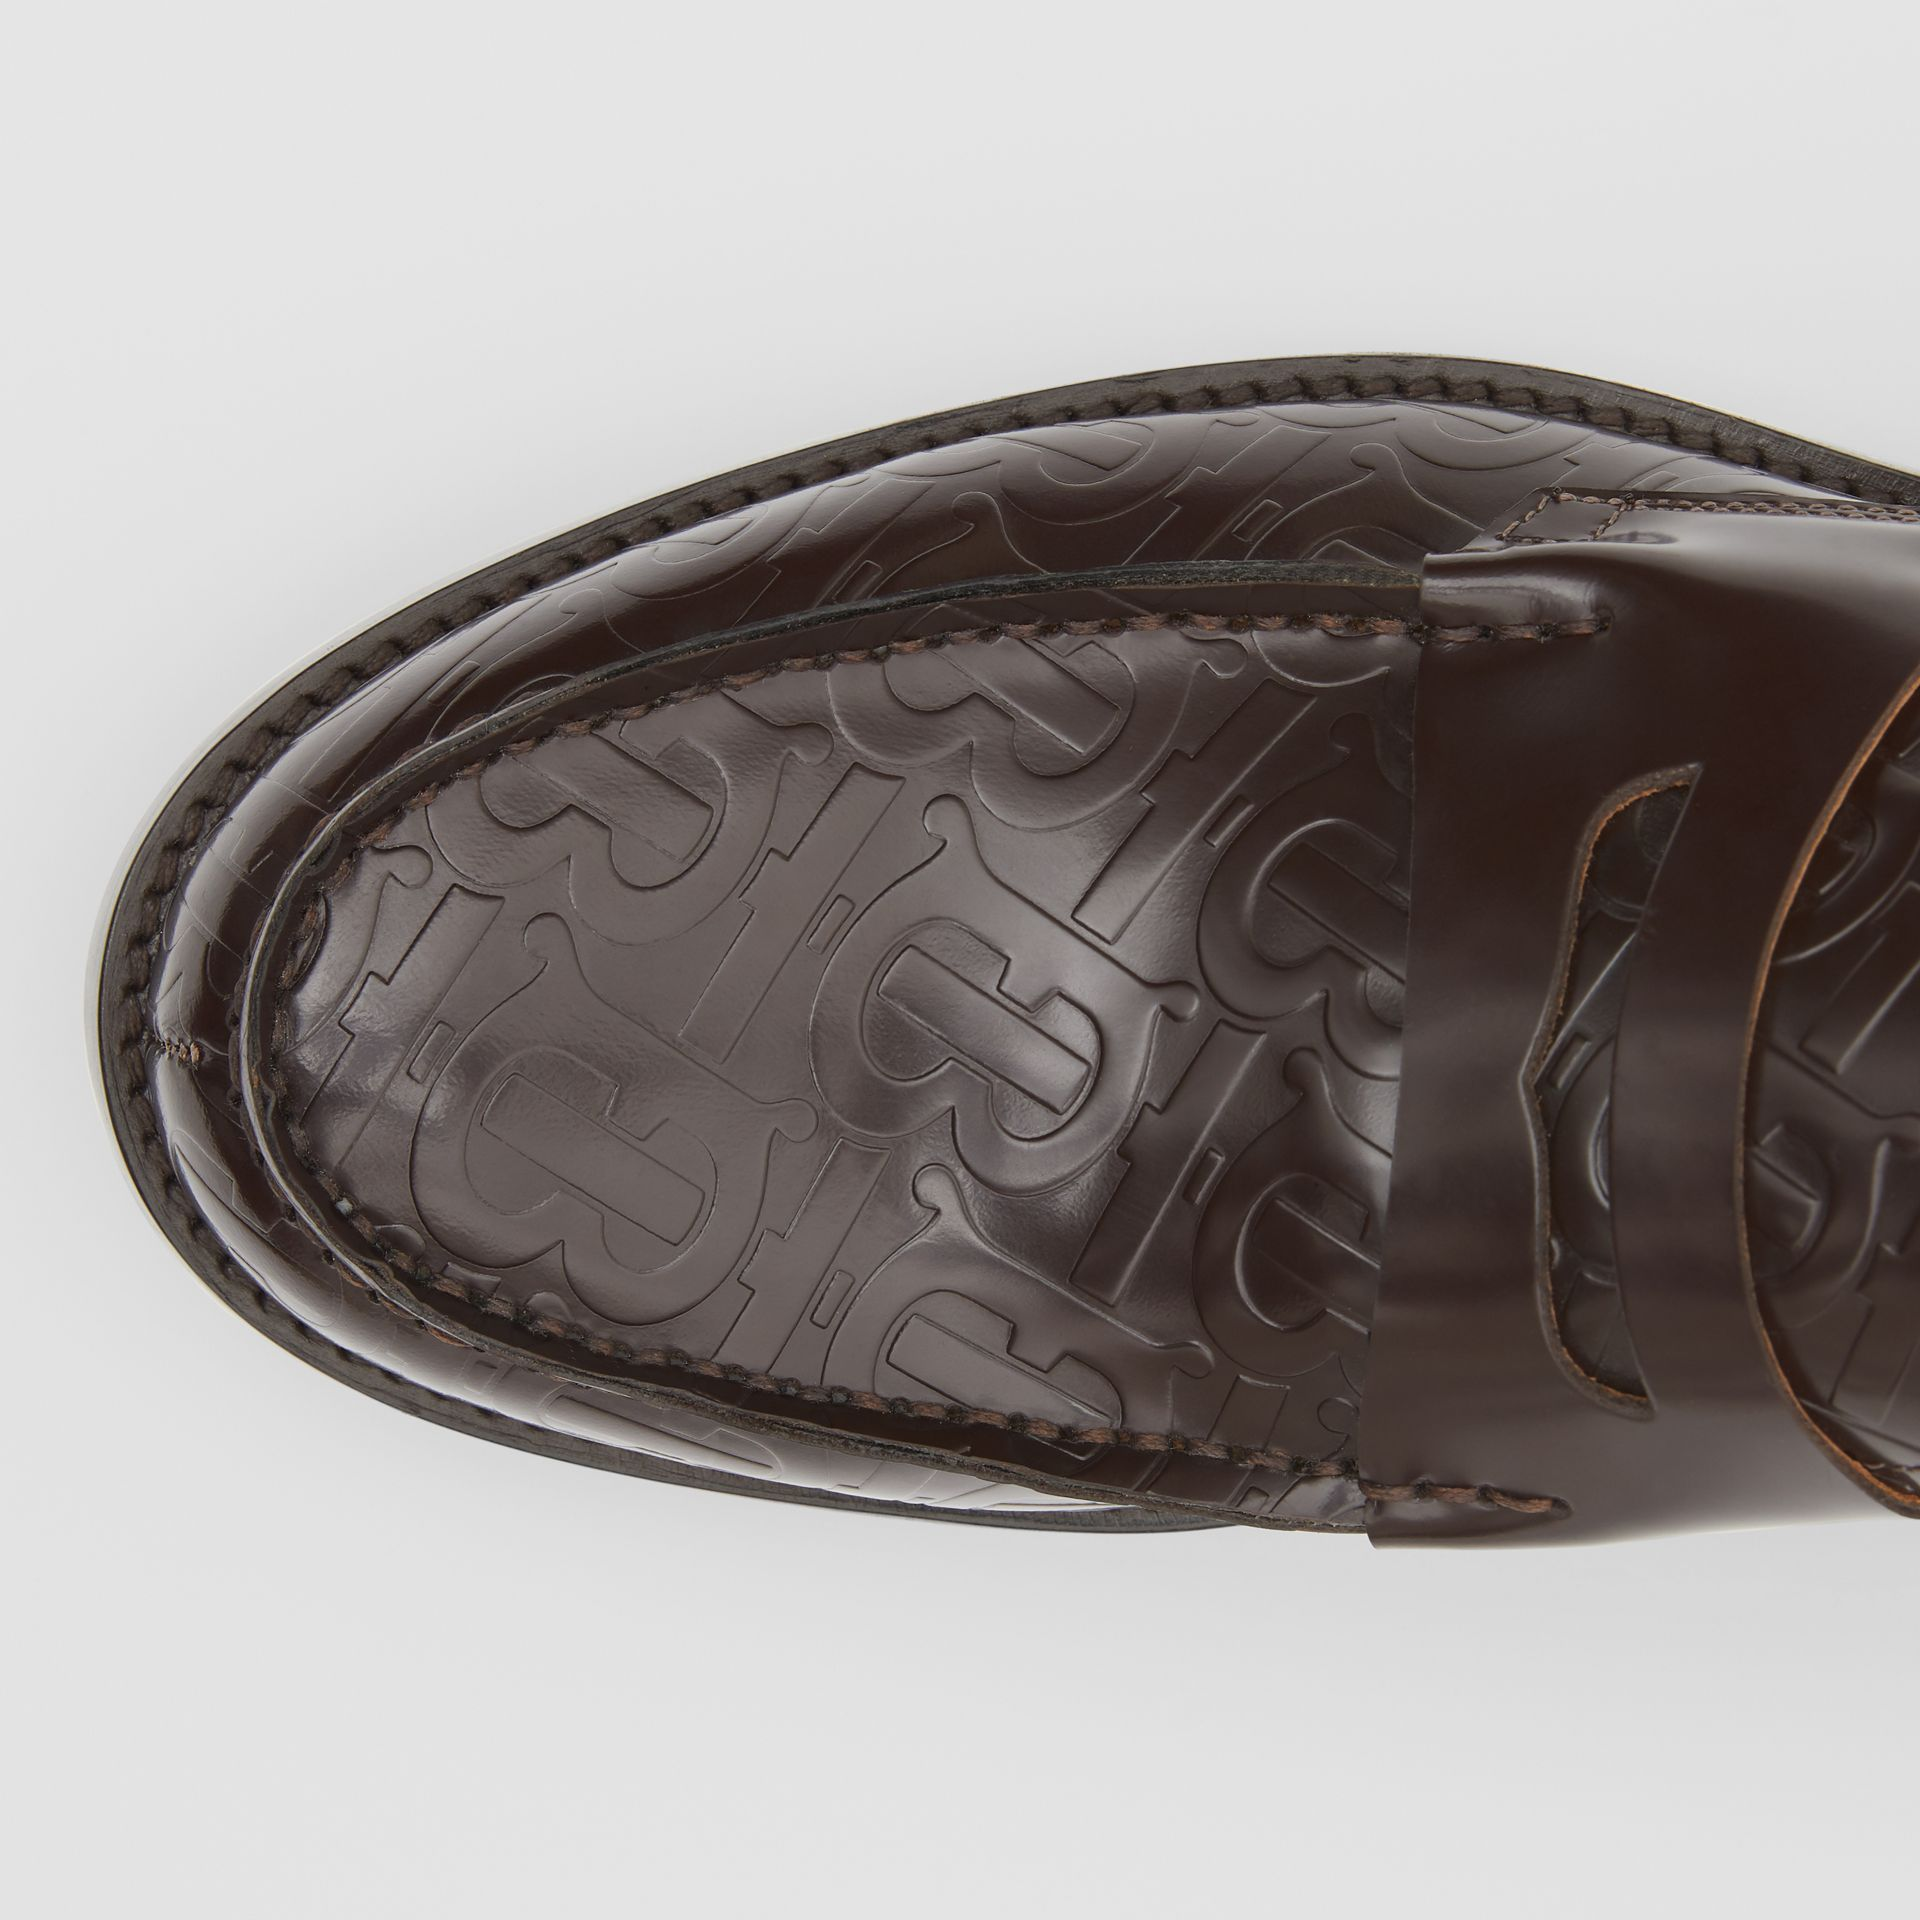 D-ring Detail Monogram Leather Loafers in Chocolate - Men | Burberry Canada - gallery image 1